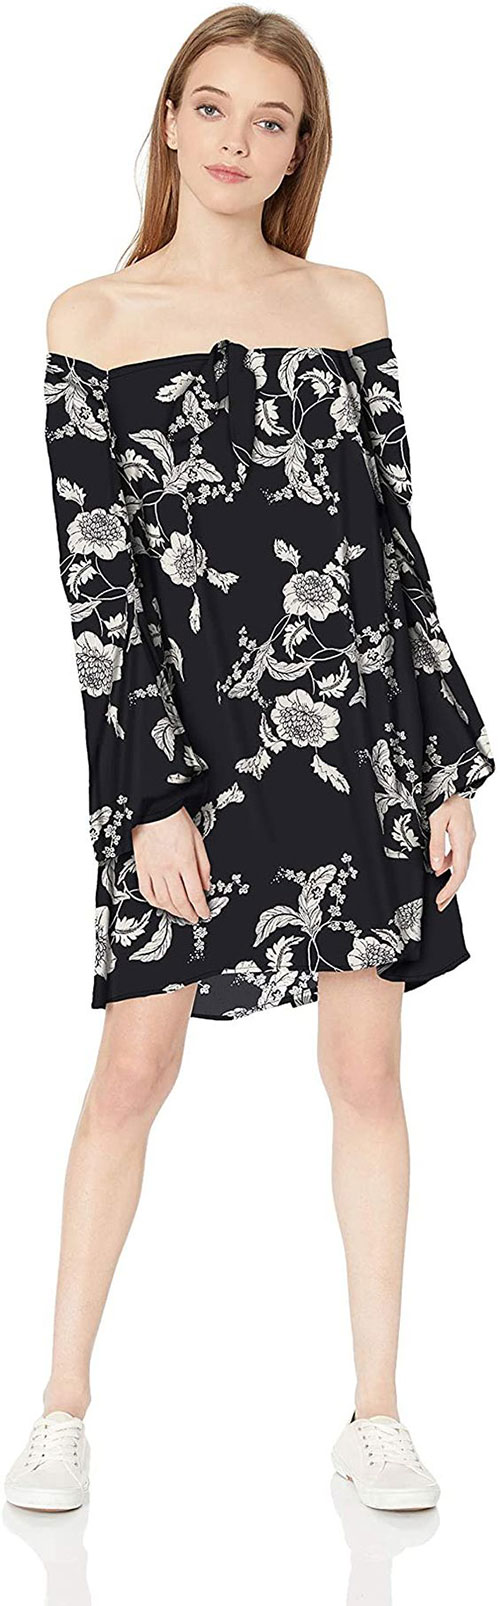 Best-Spring-Women-Fashion-Trends-2021-Spring-Dresses-3